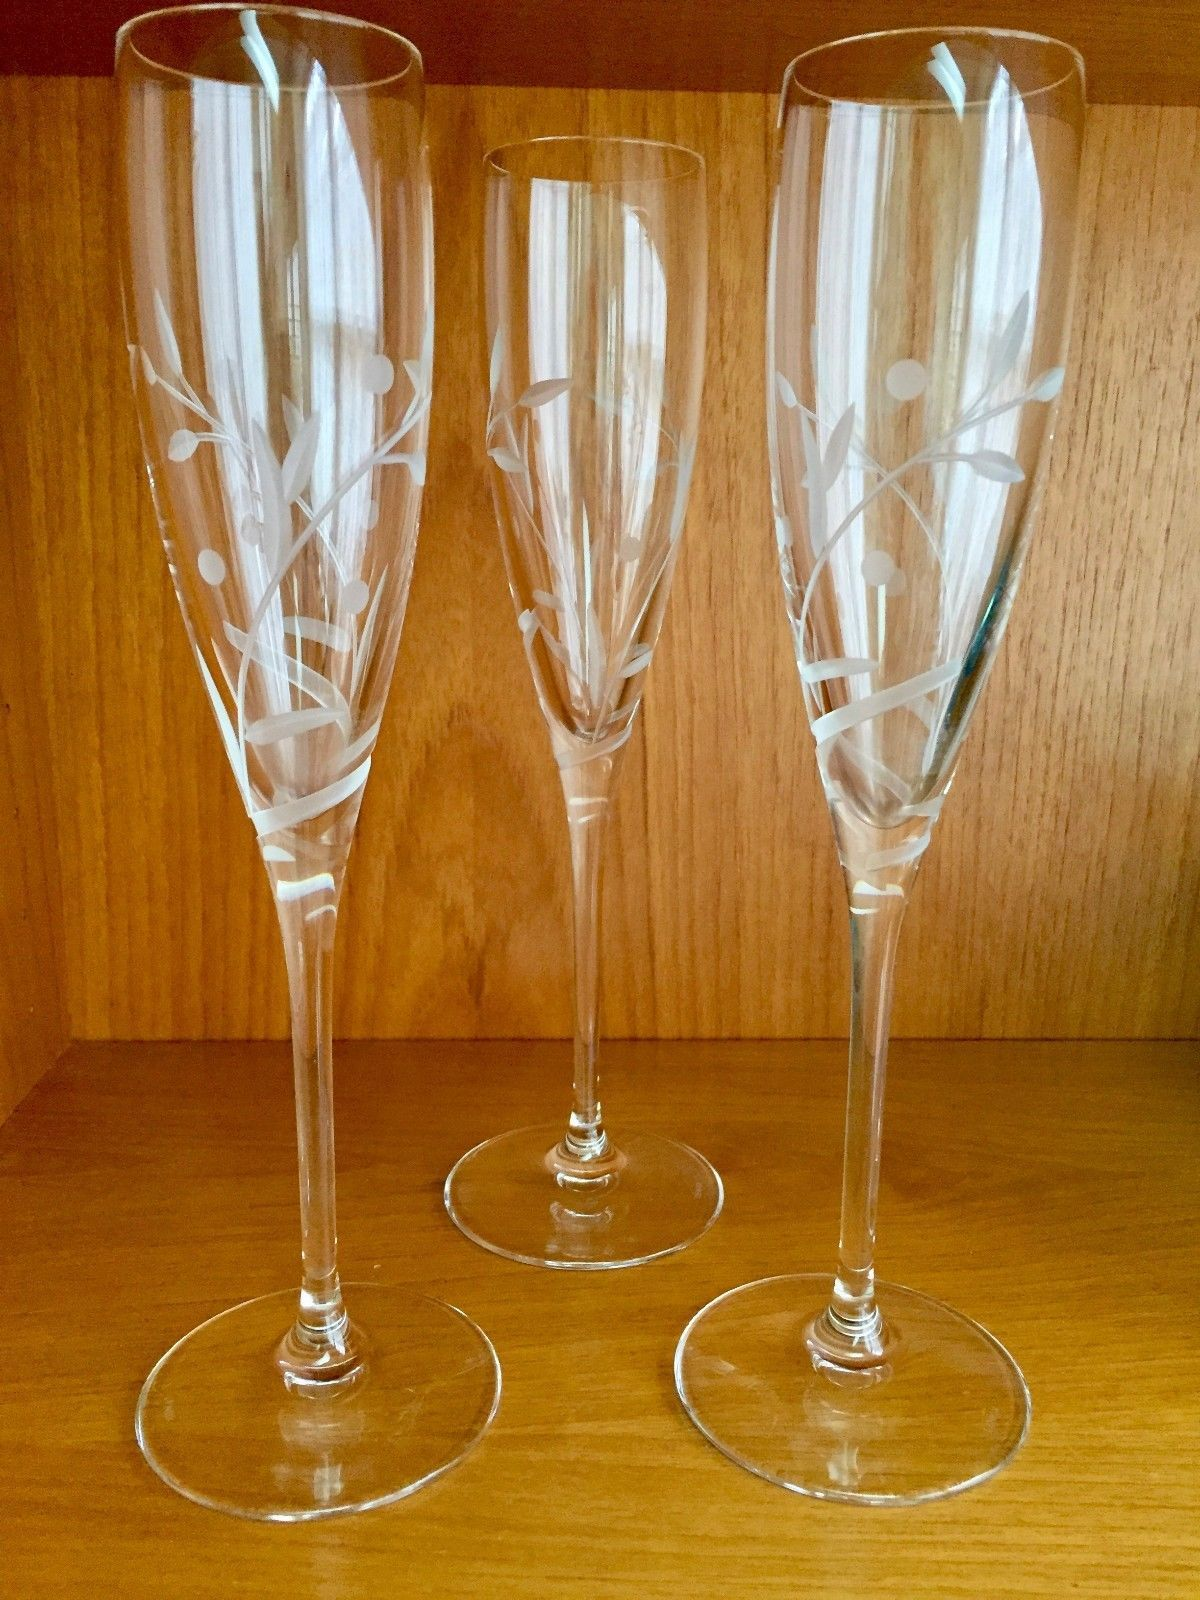 "Primary image for 3 LENOX 10 1/4"" TALL STEM CHAMPAGNE FLUTES CUT GLASS CRYSTAL"